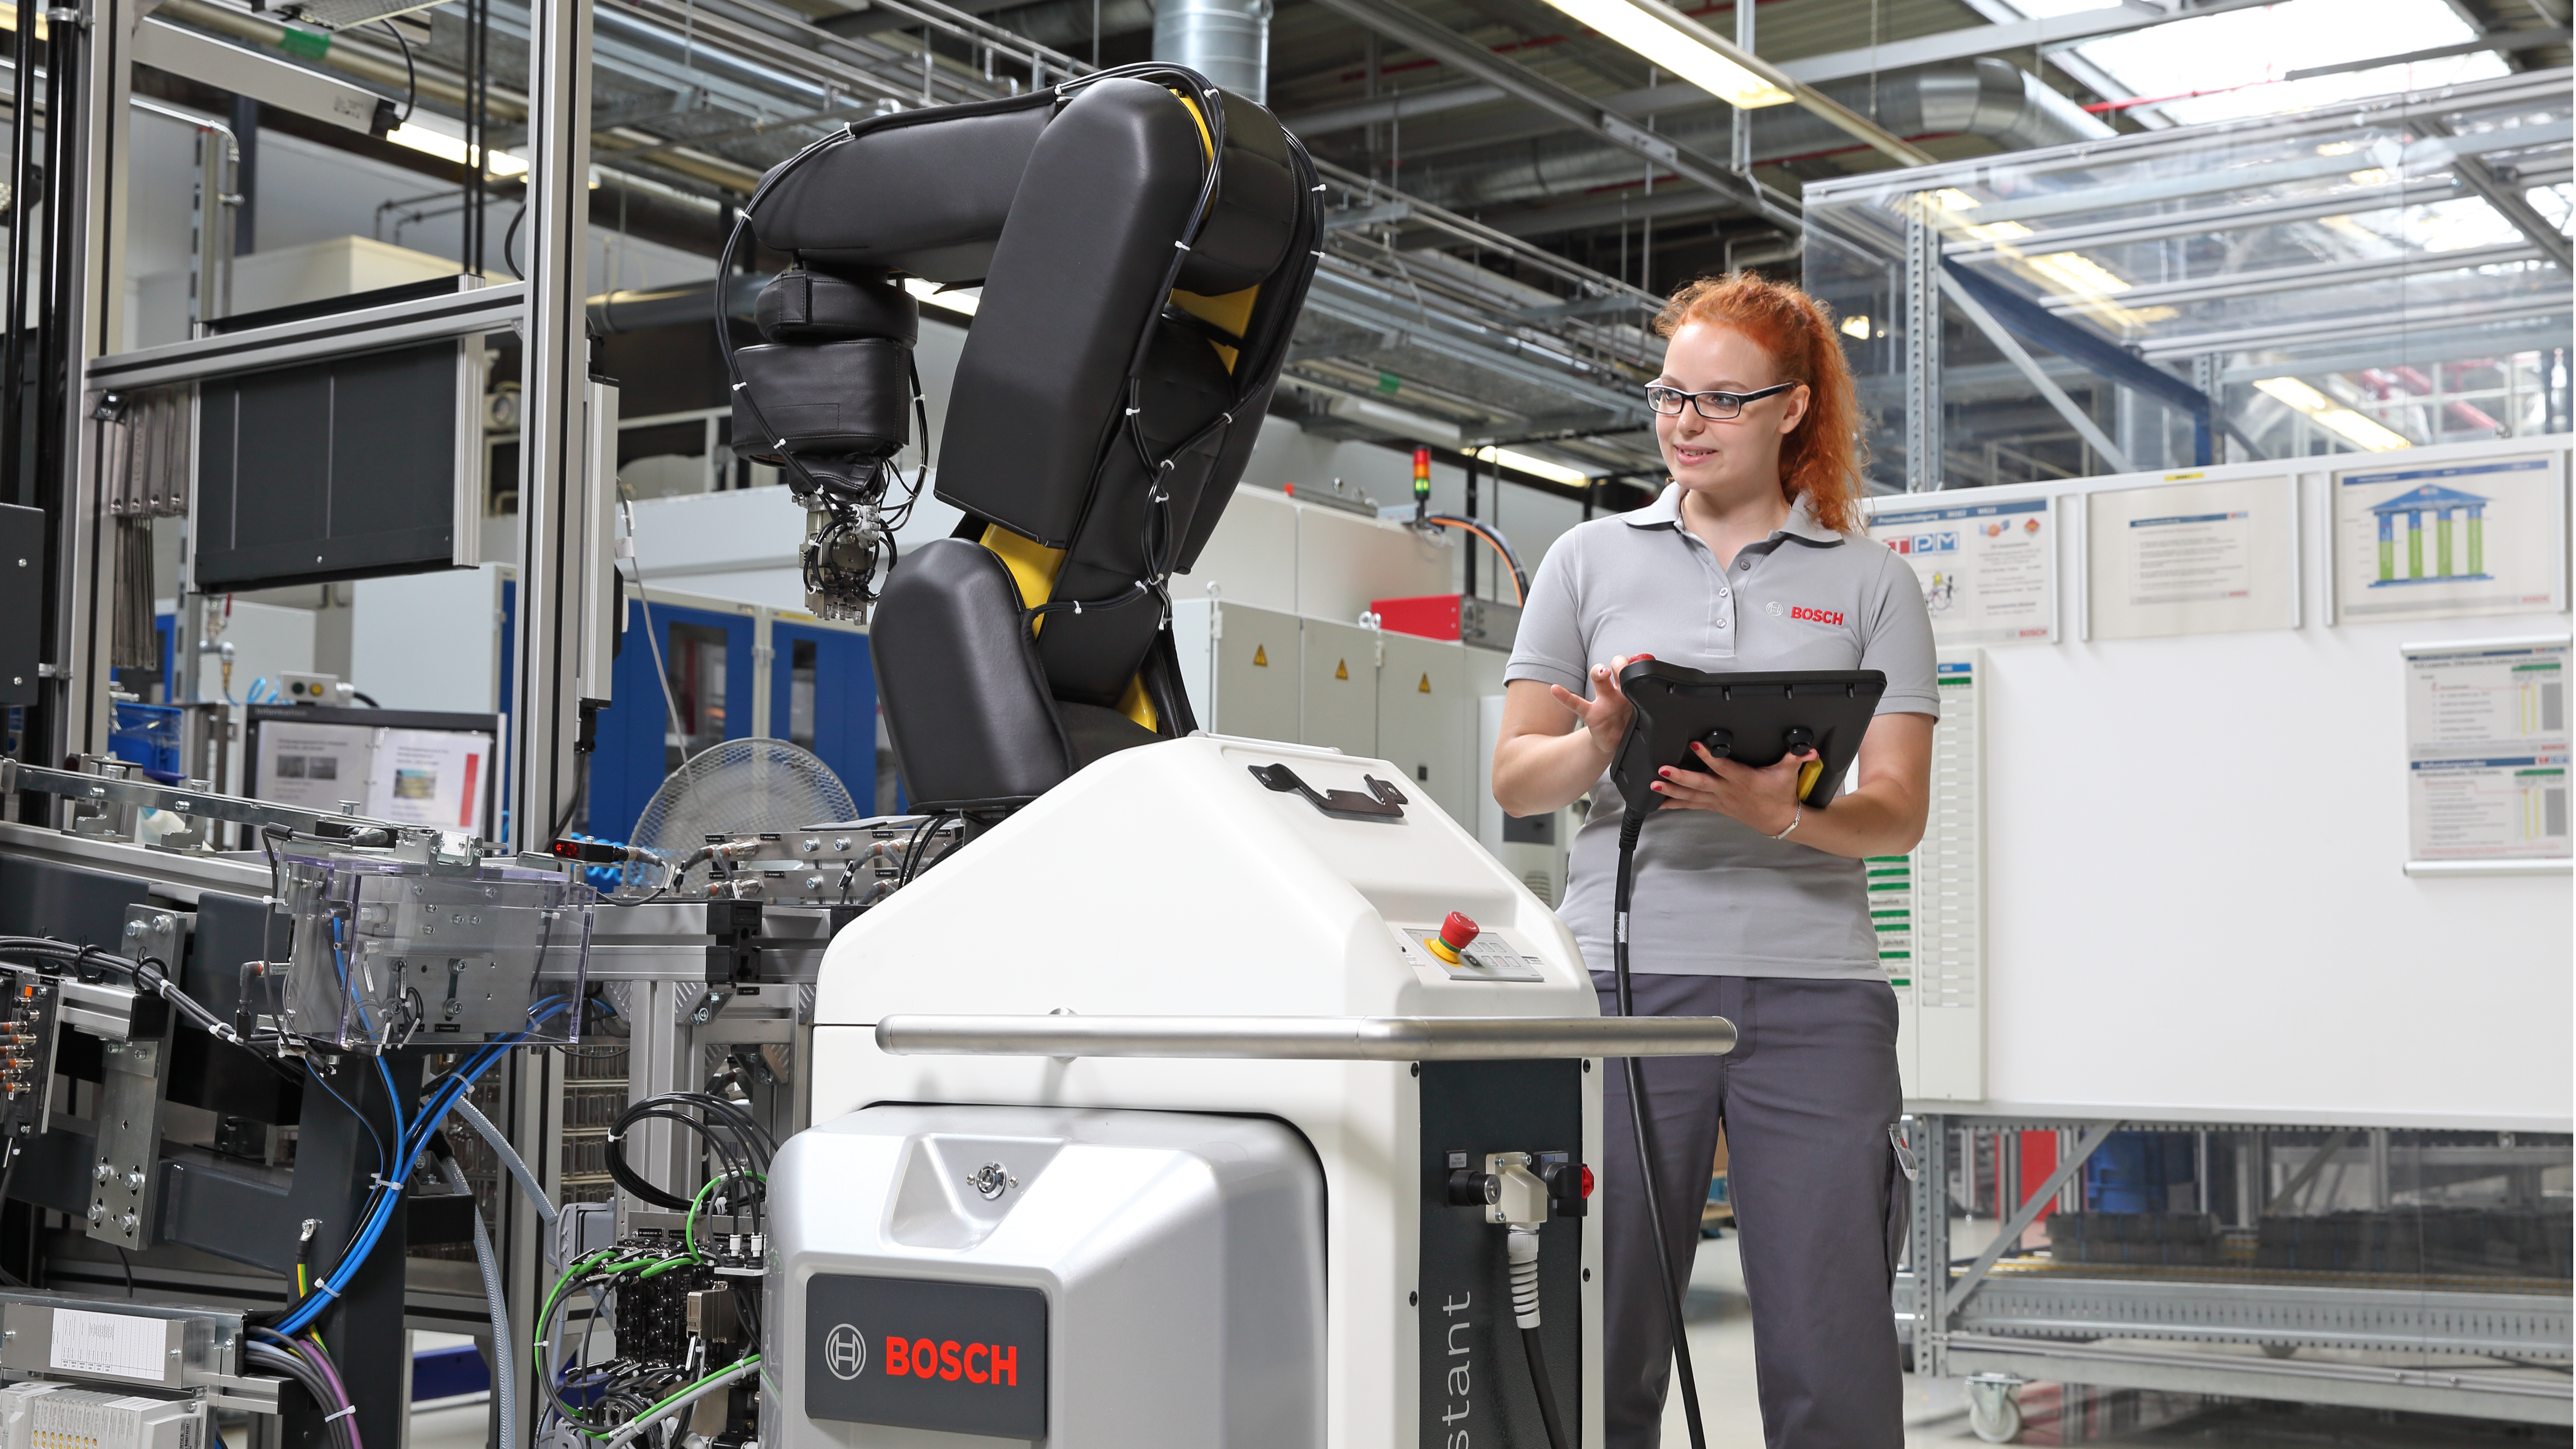 Occupational Training 4.0 – hands-on experience with connected manufacturing